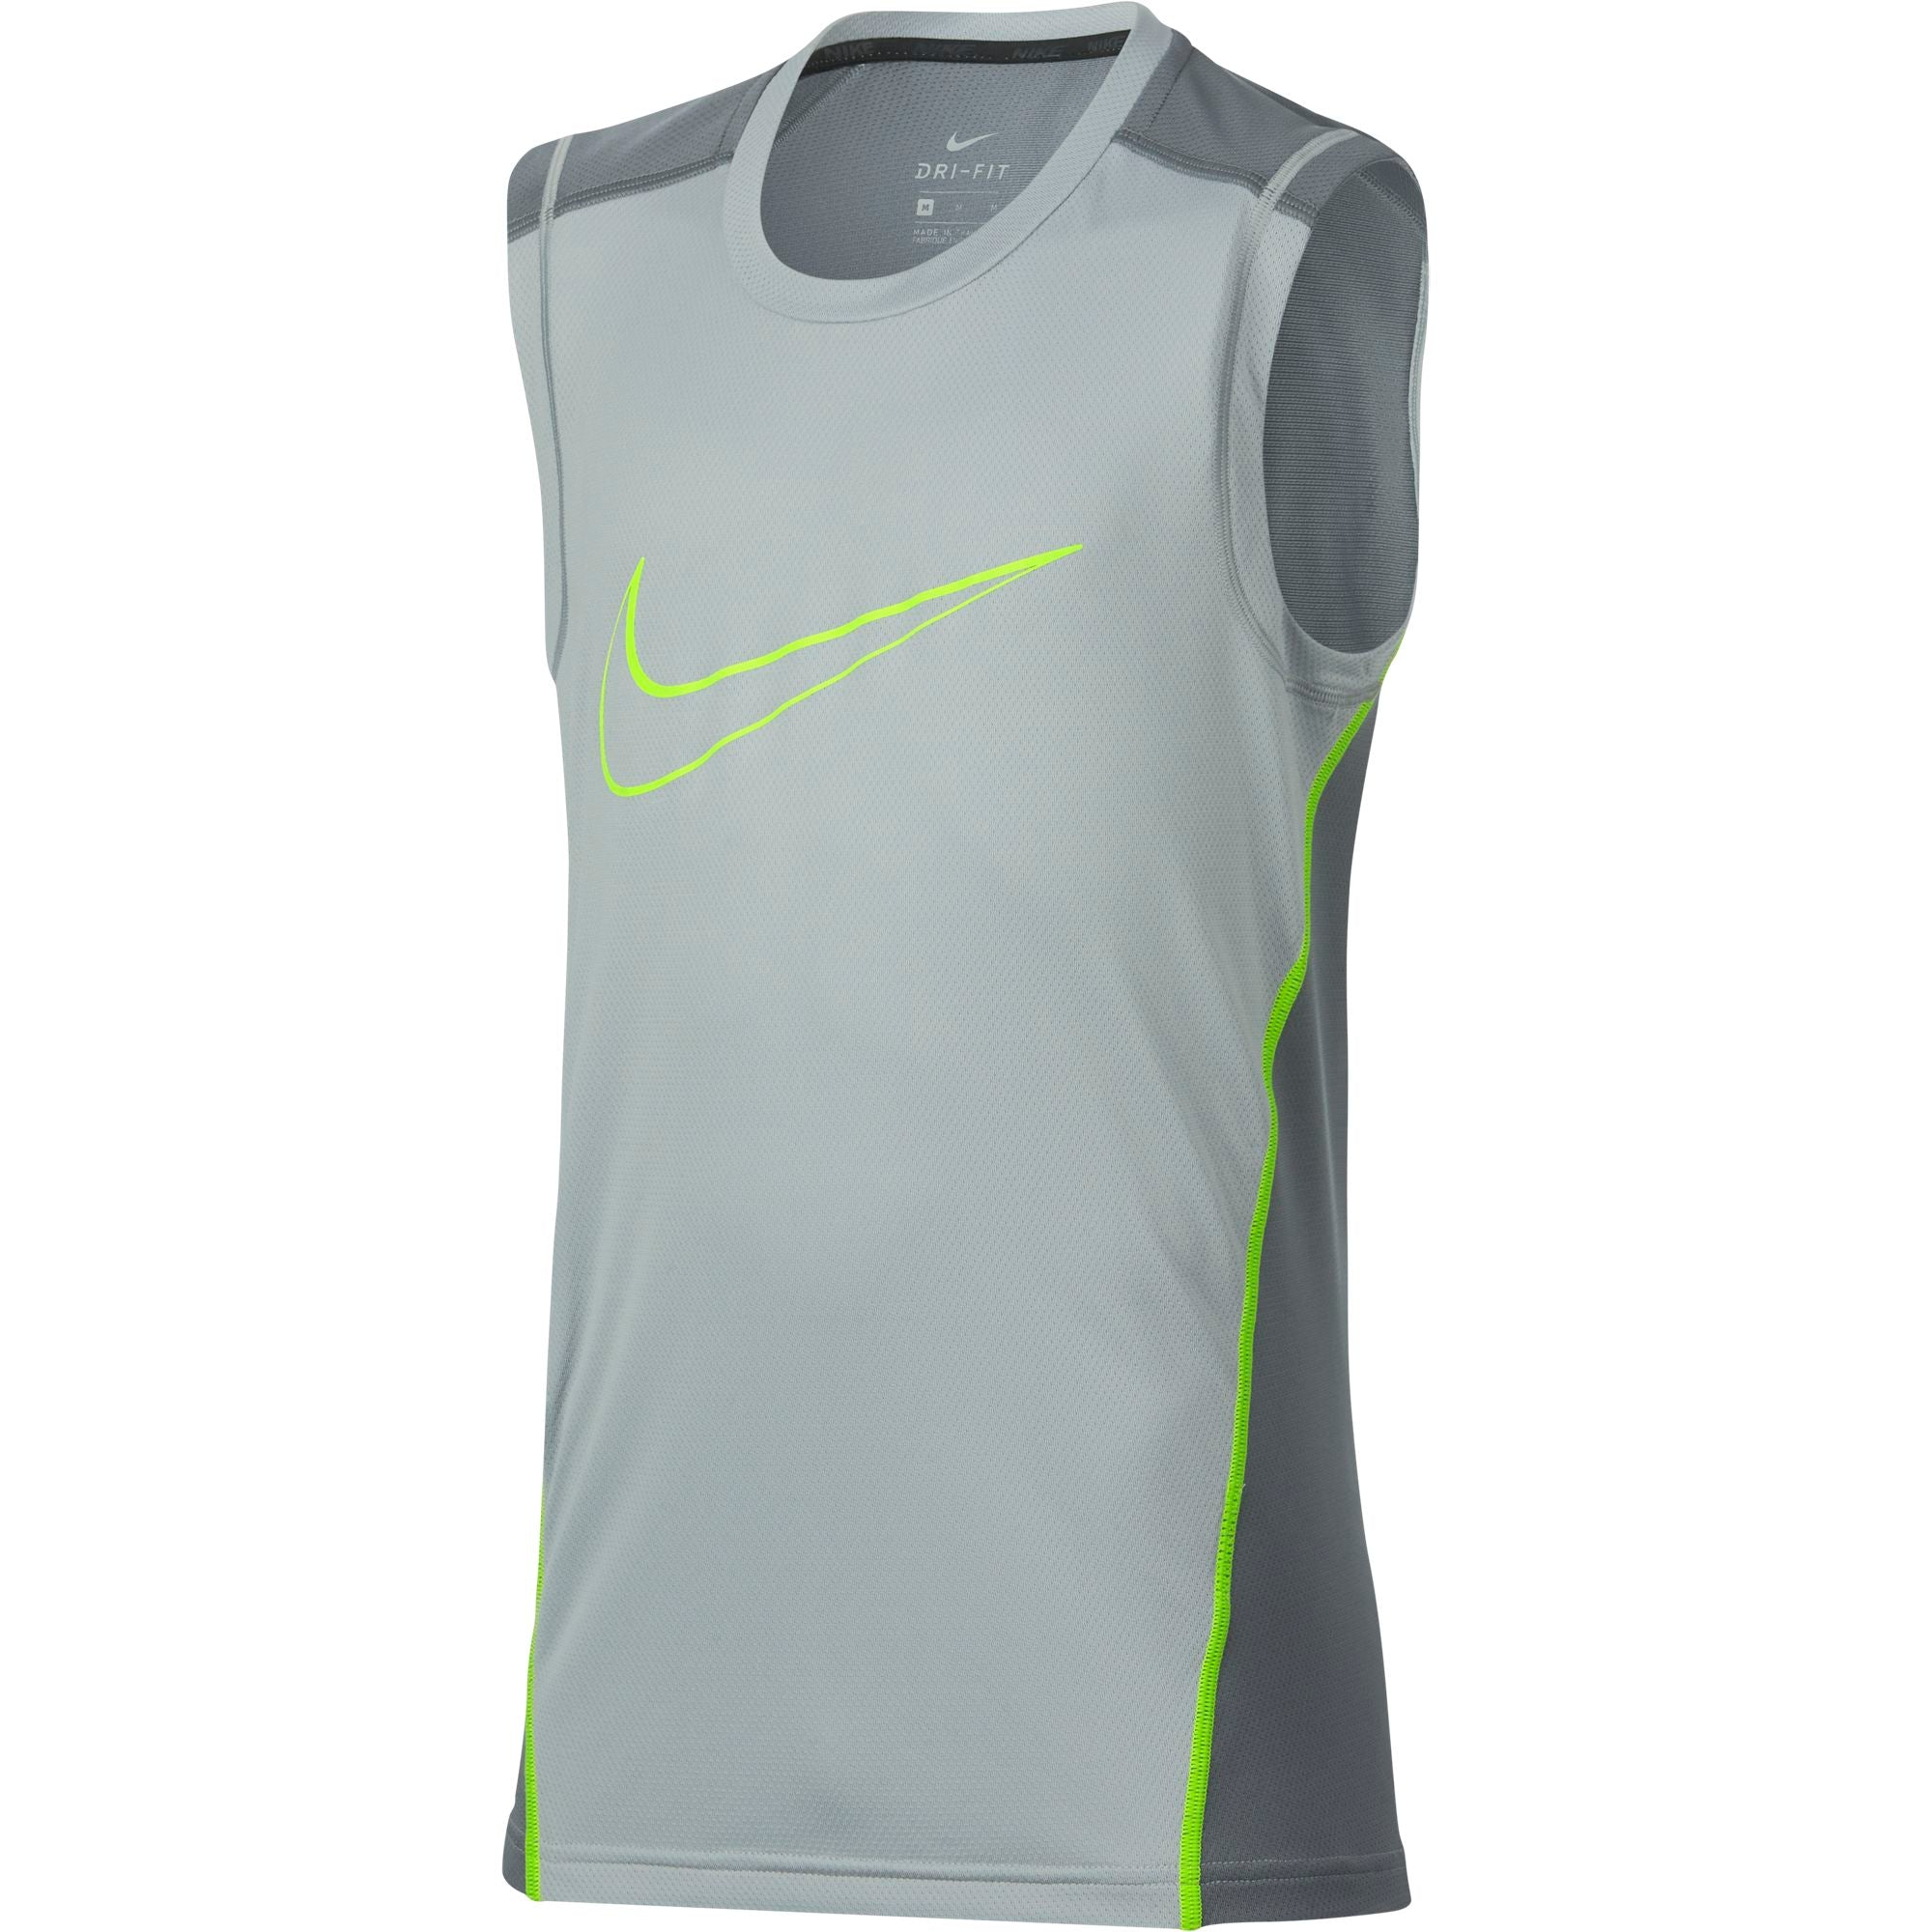 Nike Kids Training Dry Sleeveless Top - NK-895452-012